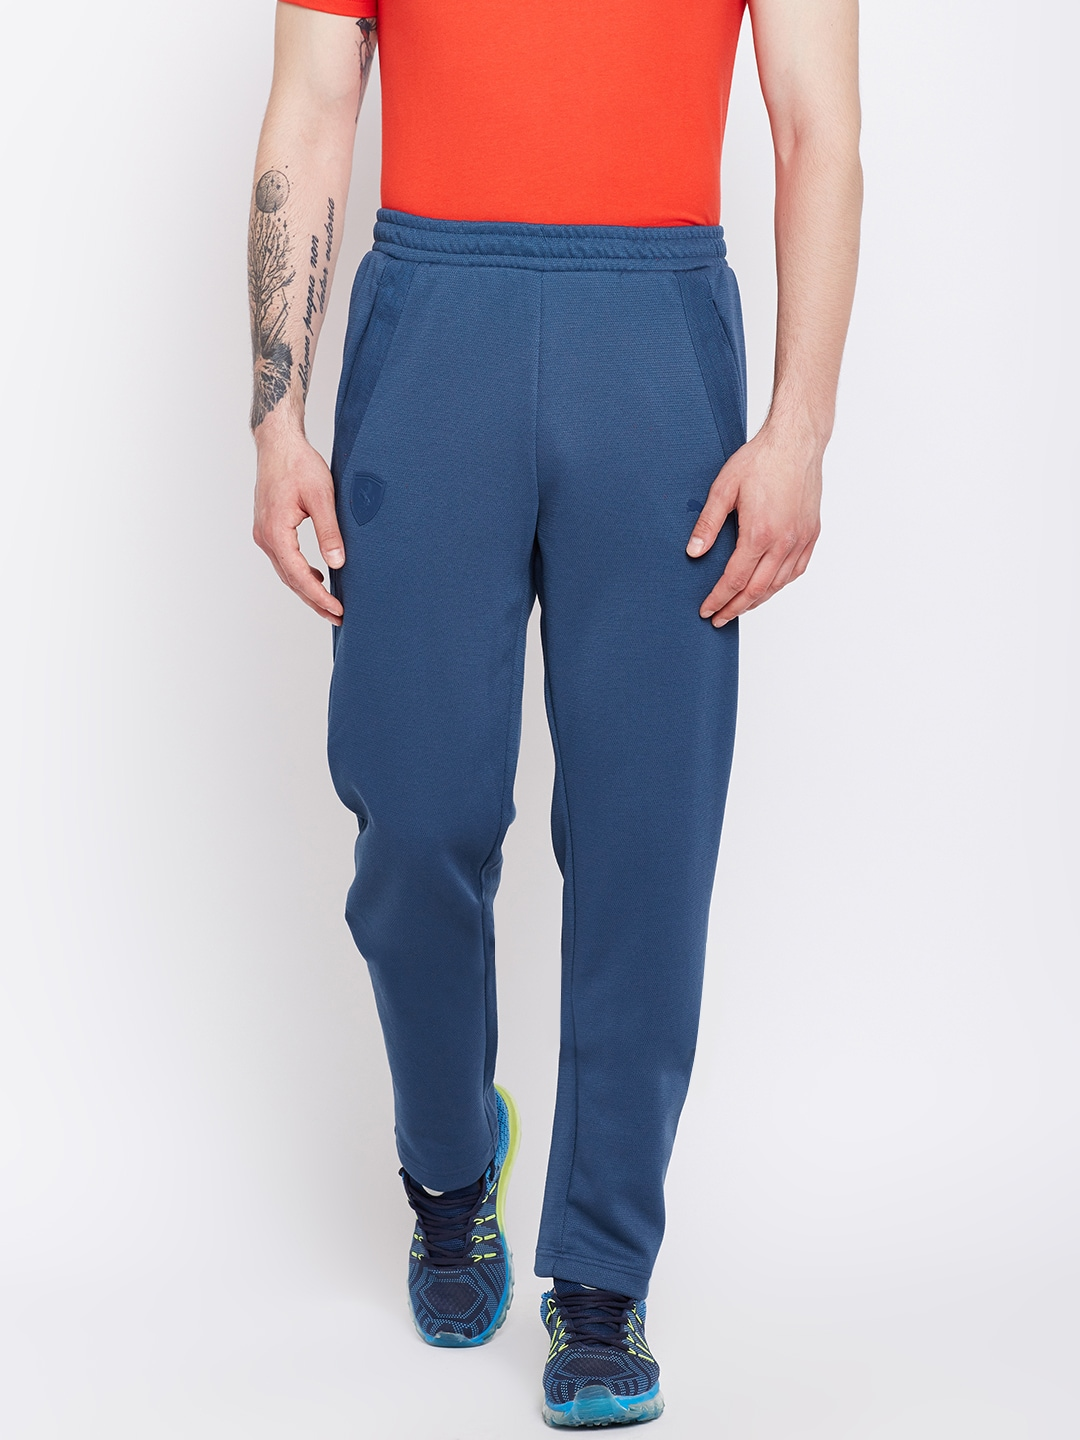 d7f0e7f92d Men Track Pants-Buy Track Pant for Men Online in India